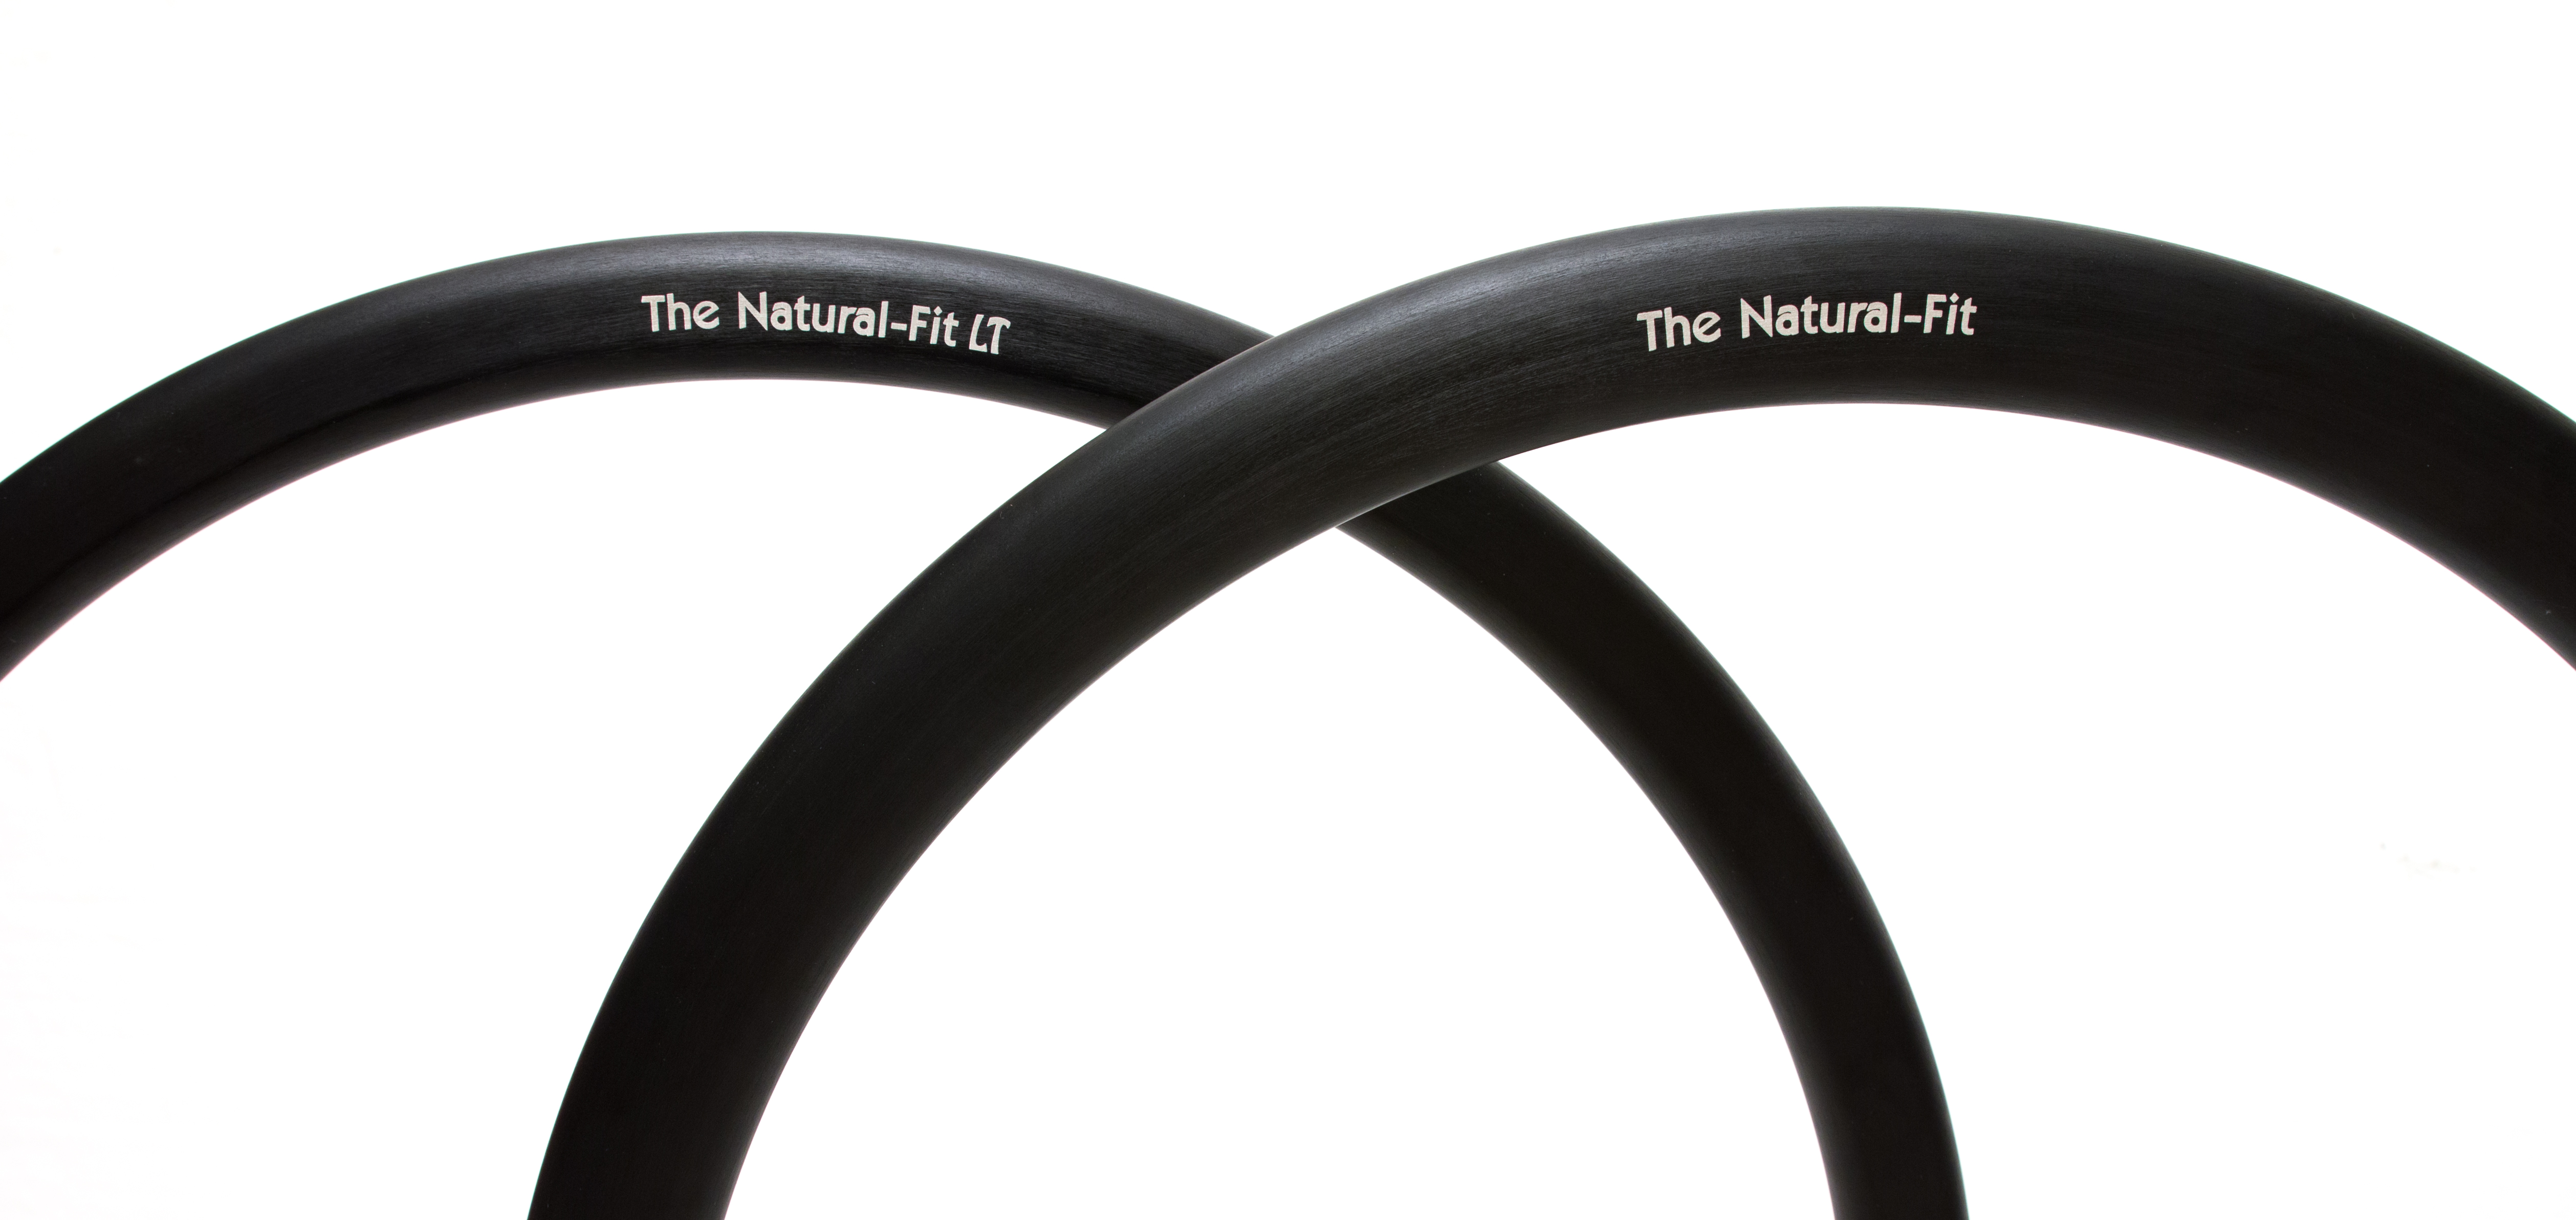 26 Quot Natural Fit Lt Oval 6 Tab Fixing Flexel Mobility